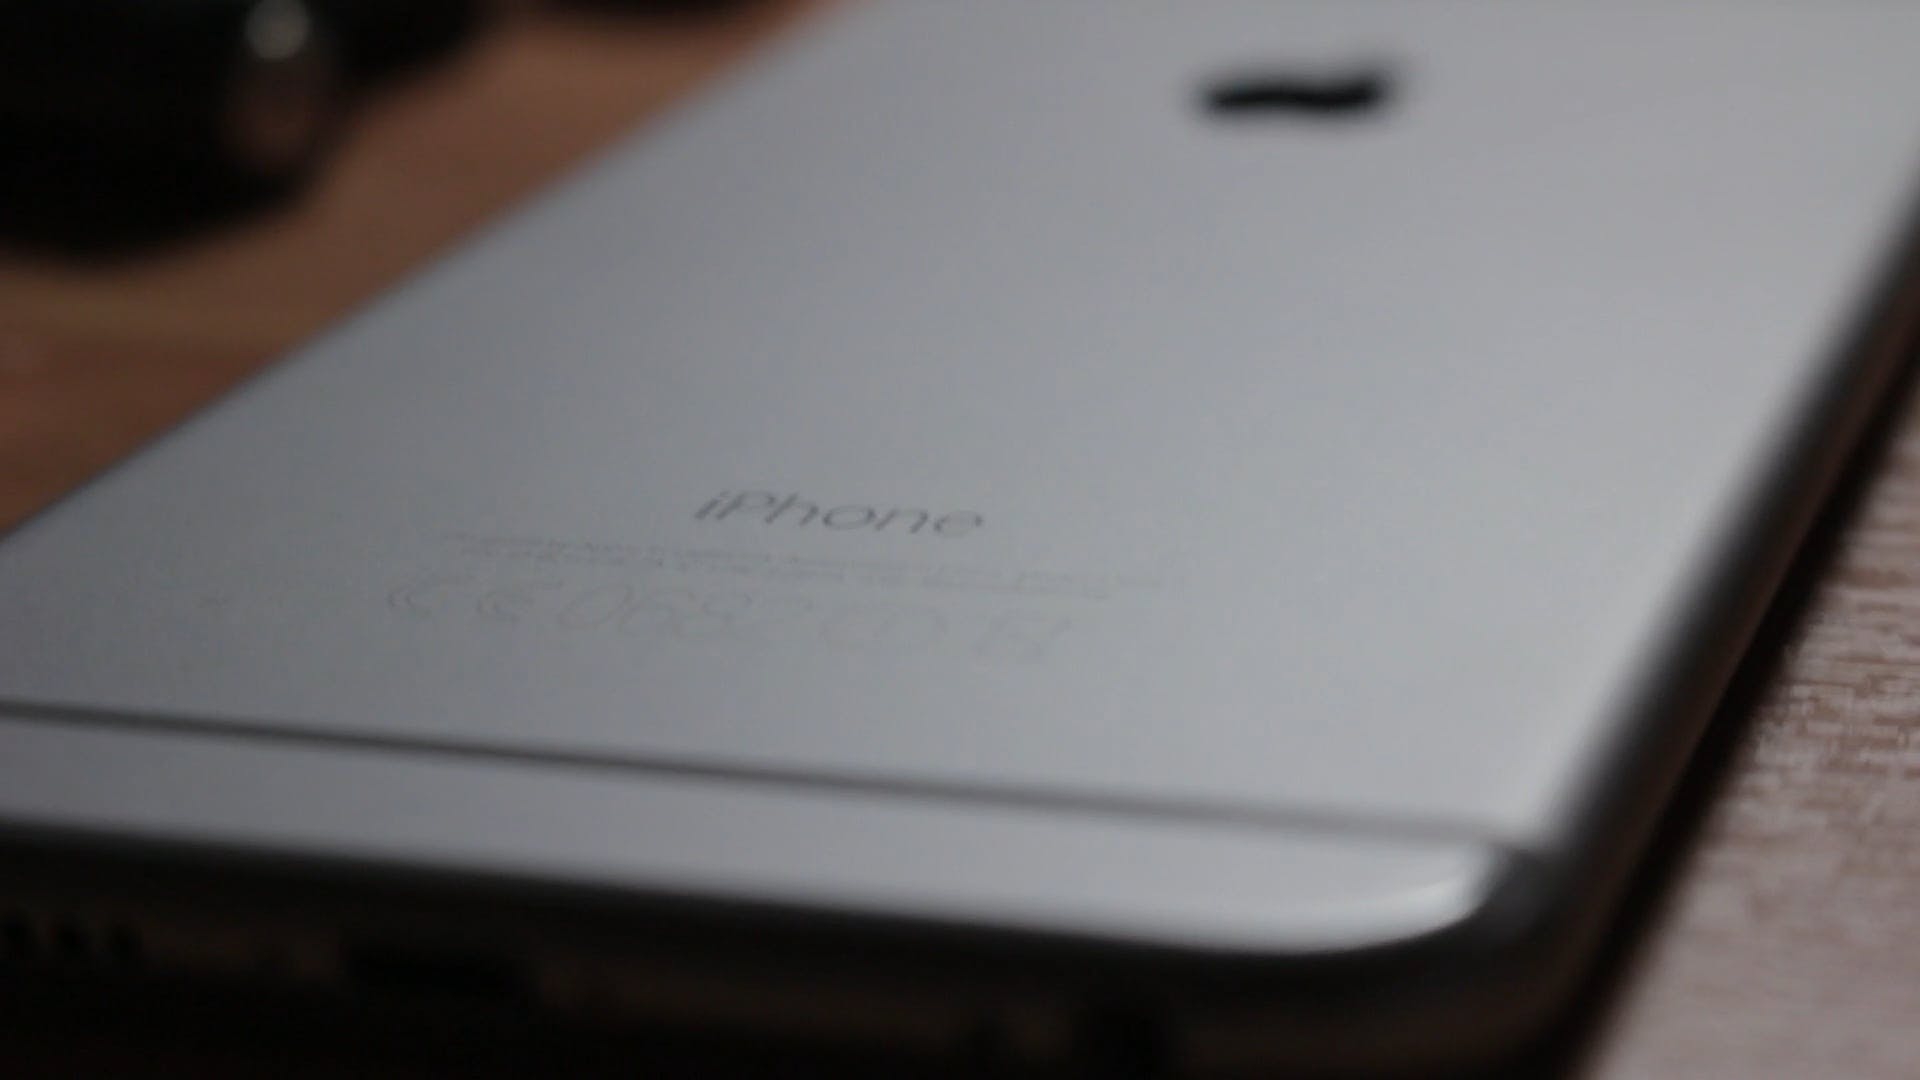 Close-Up View Of An Iphone